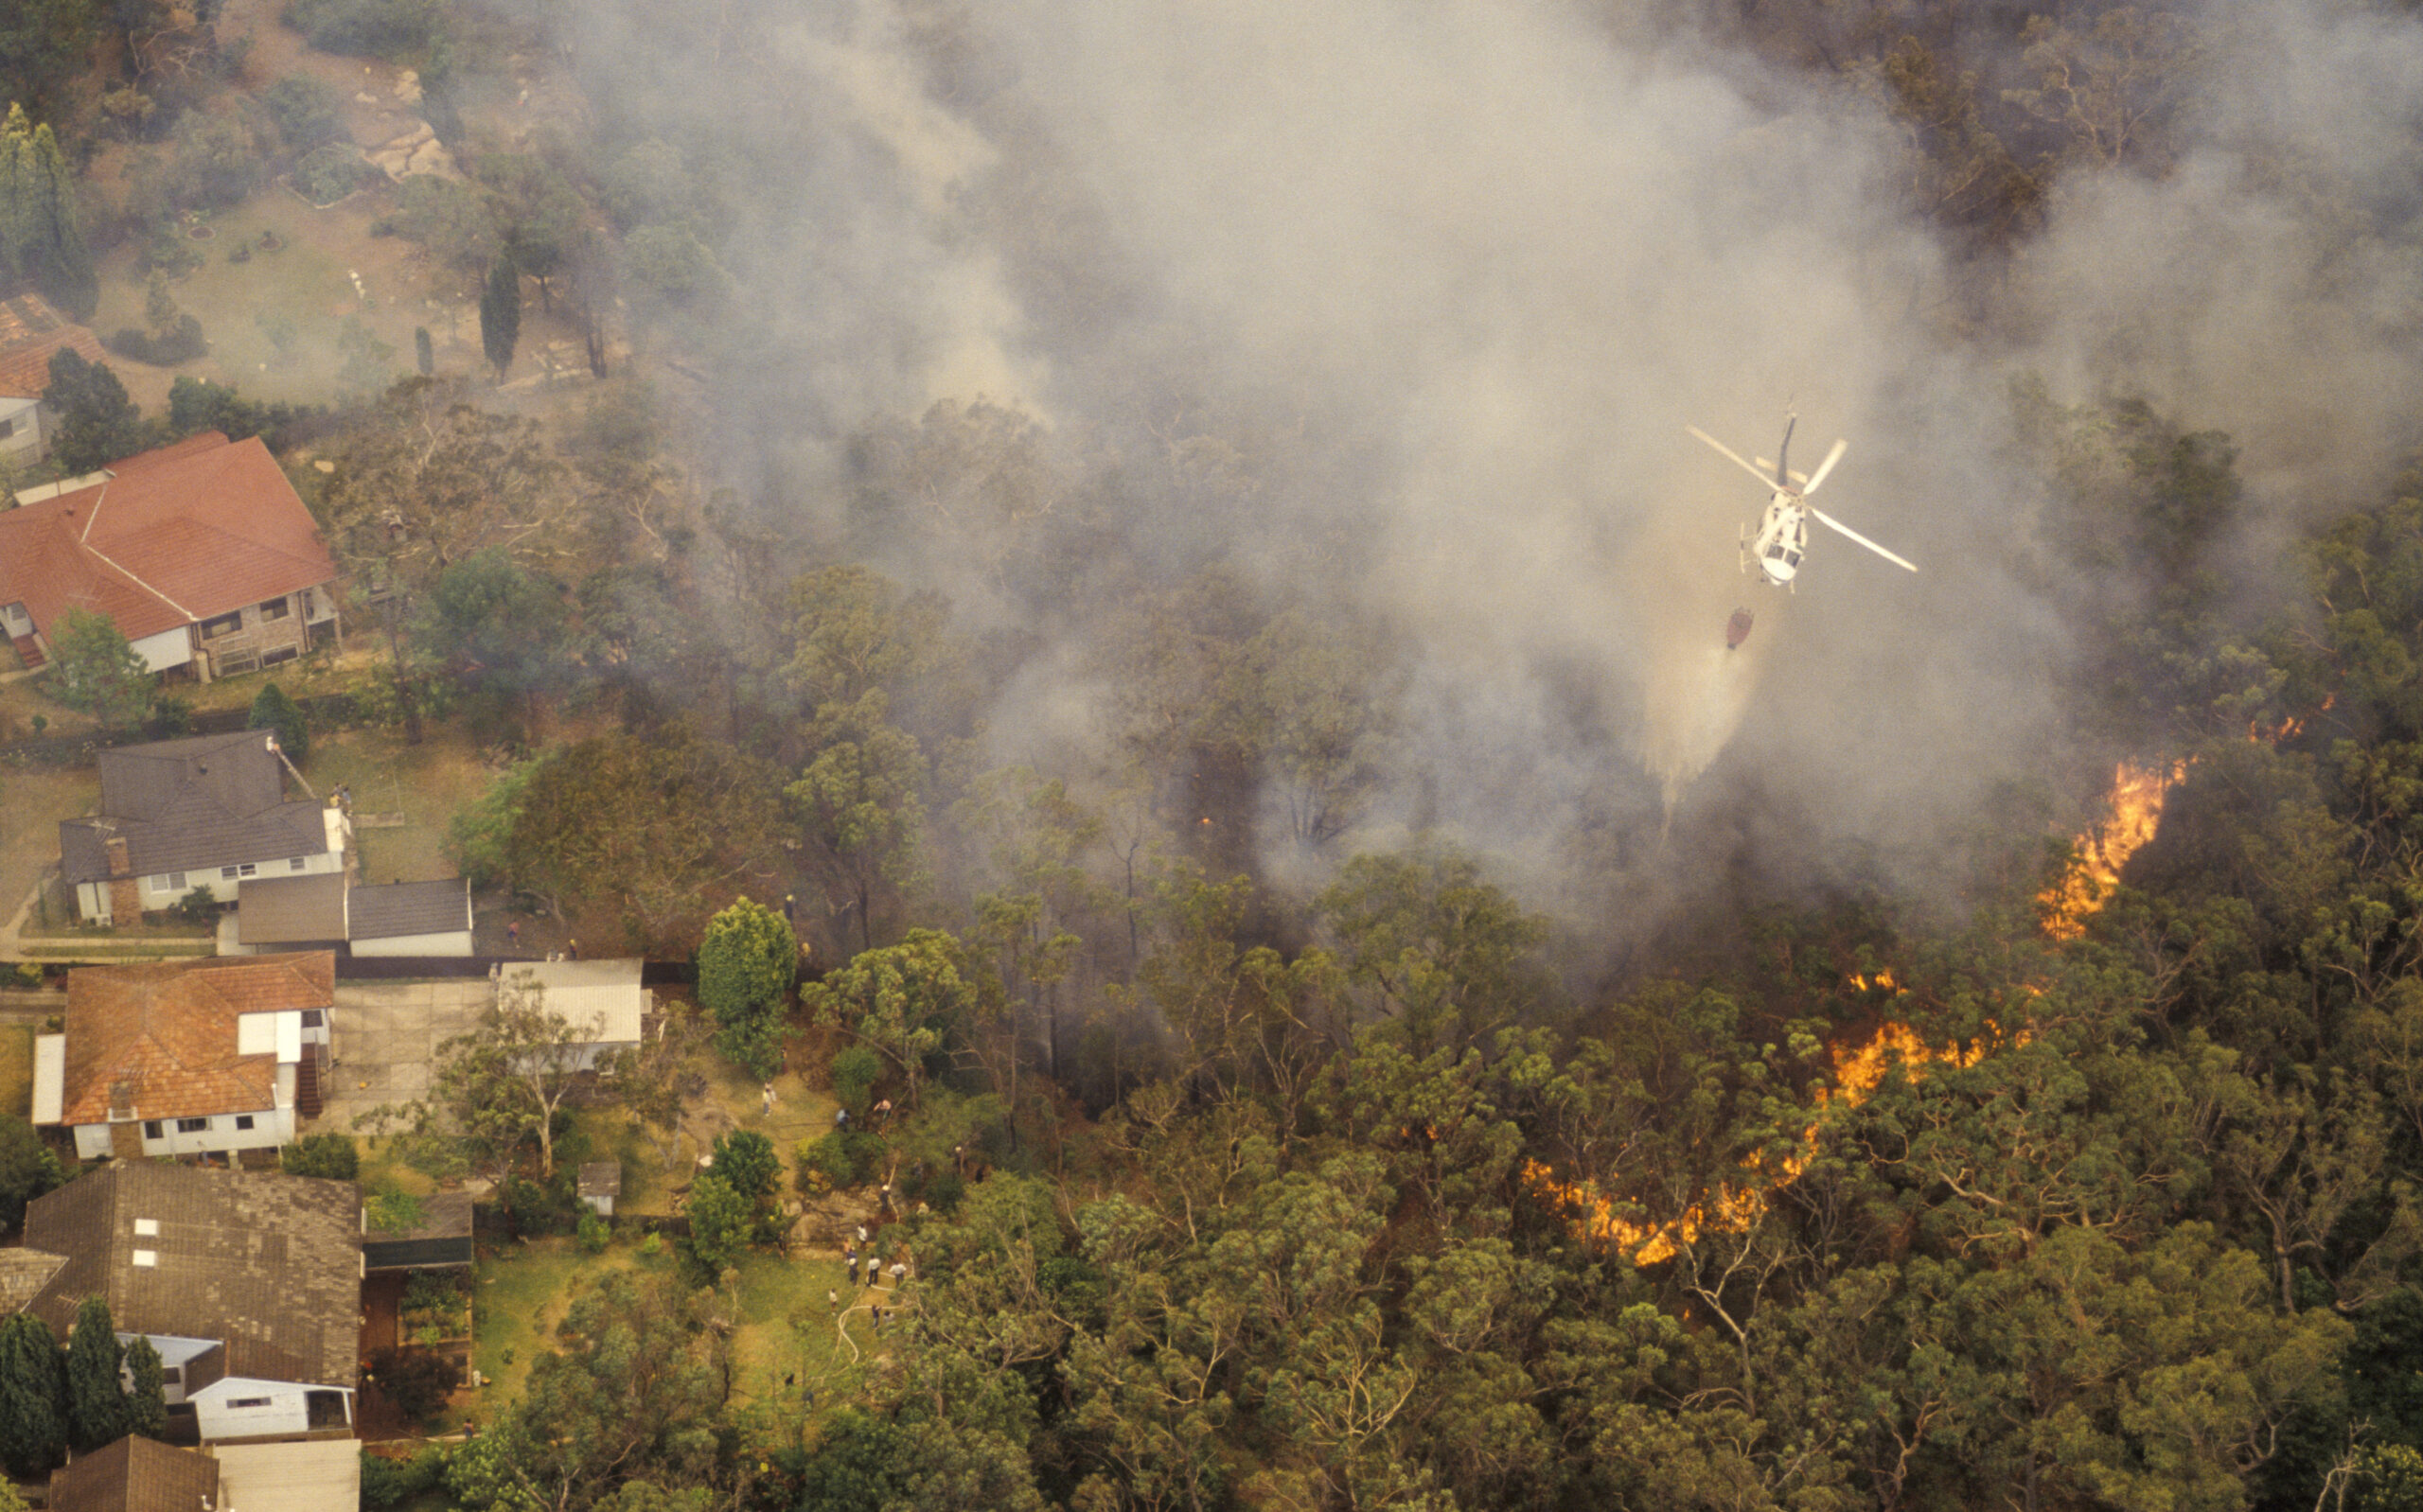 Preparing your home for a bushfire